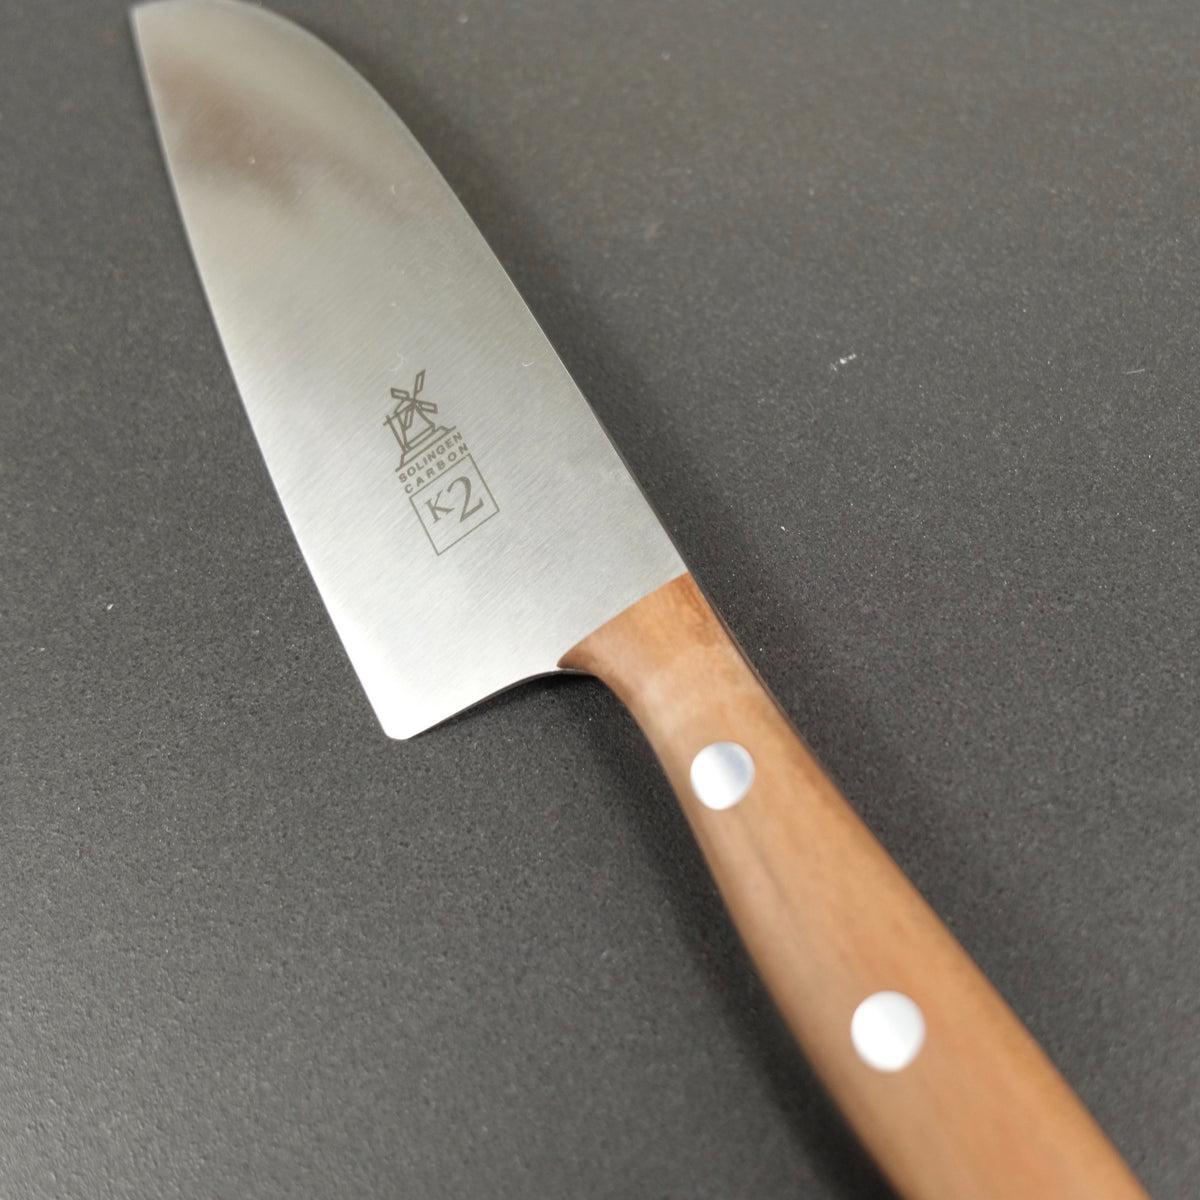 Small chef's knife K2, Carbon or Stainless steel - Windmühlenmesser